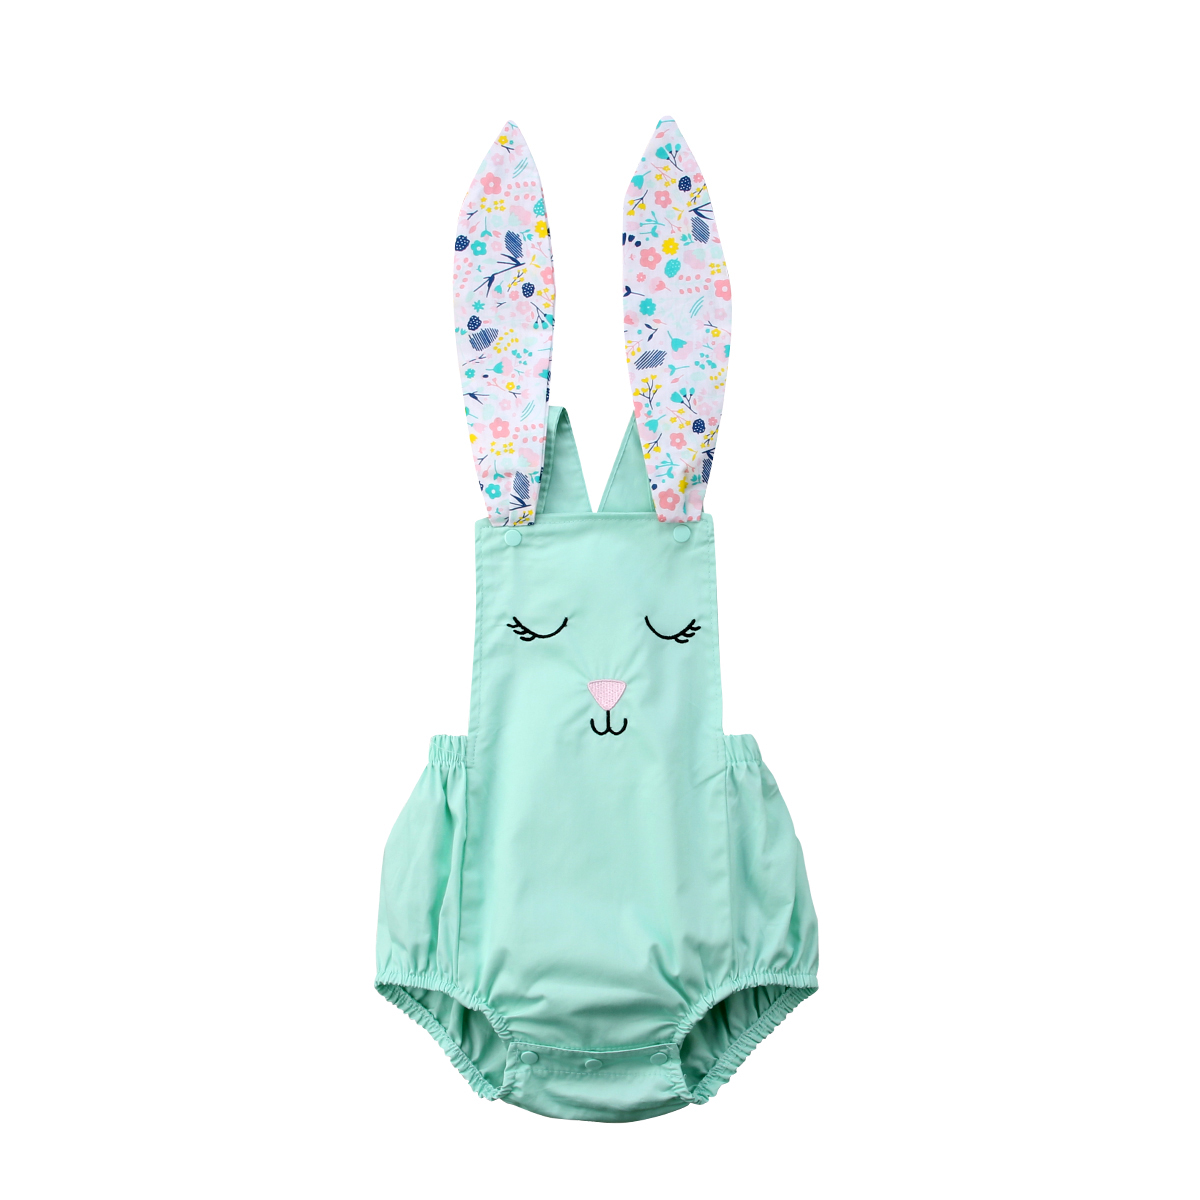 Toddler Newborn Baby Girl Rabbit Dress Up Cosutme Bodysuit Playsuit Jumpsuit Outfit Clothes Summer Clothes Cute 0-18m Beneficial To Essential Medulla Bodysuits